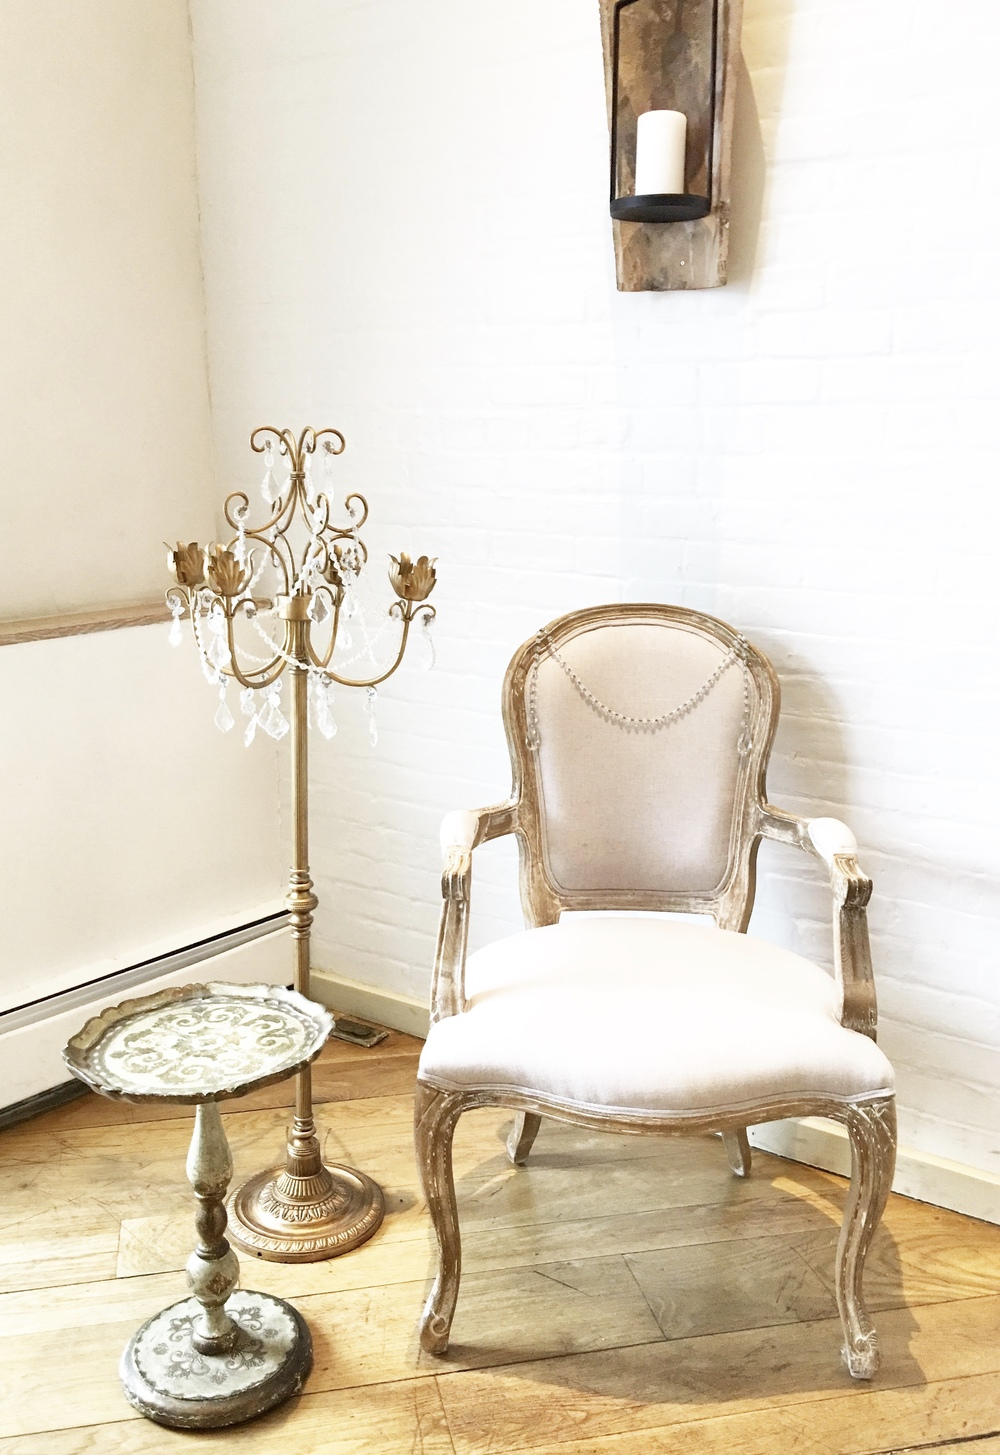 BRIDAL CHAIR with STANDING CANDELABRA